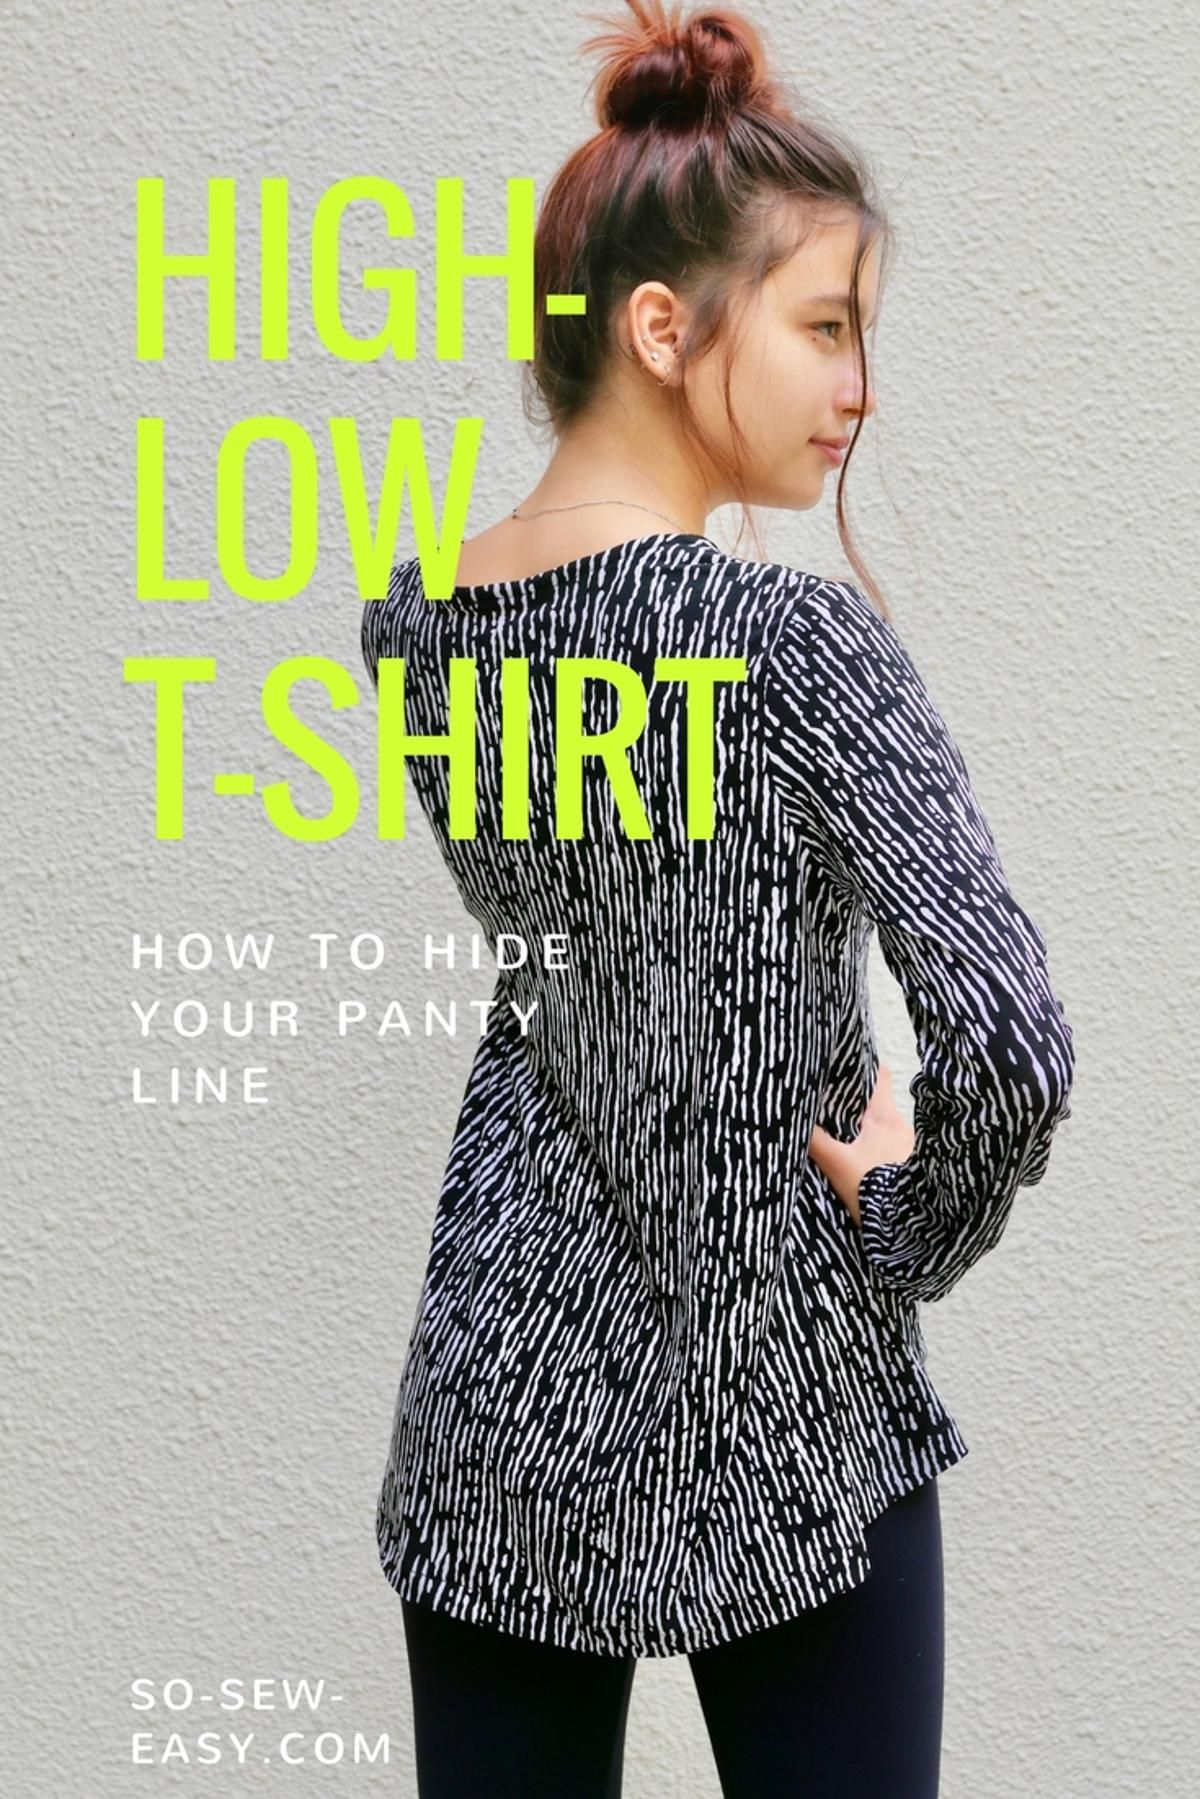 7b8ca2b2099 High-Low T-Shirt free pattern PDF download from Craftsy!